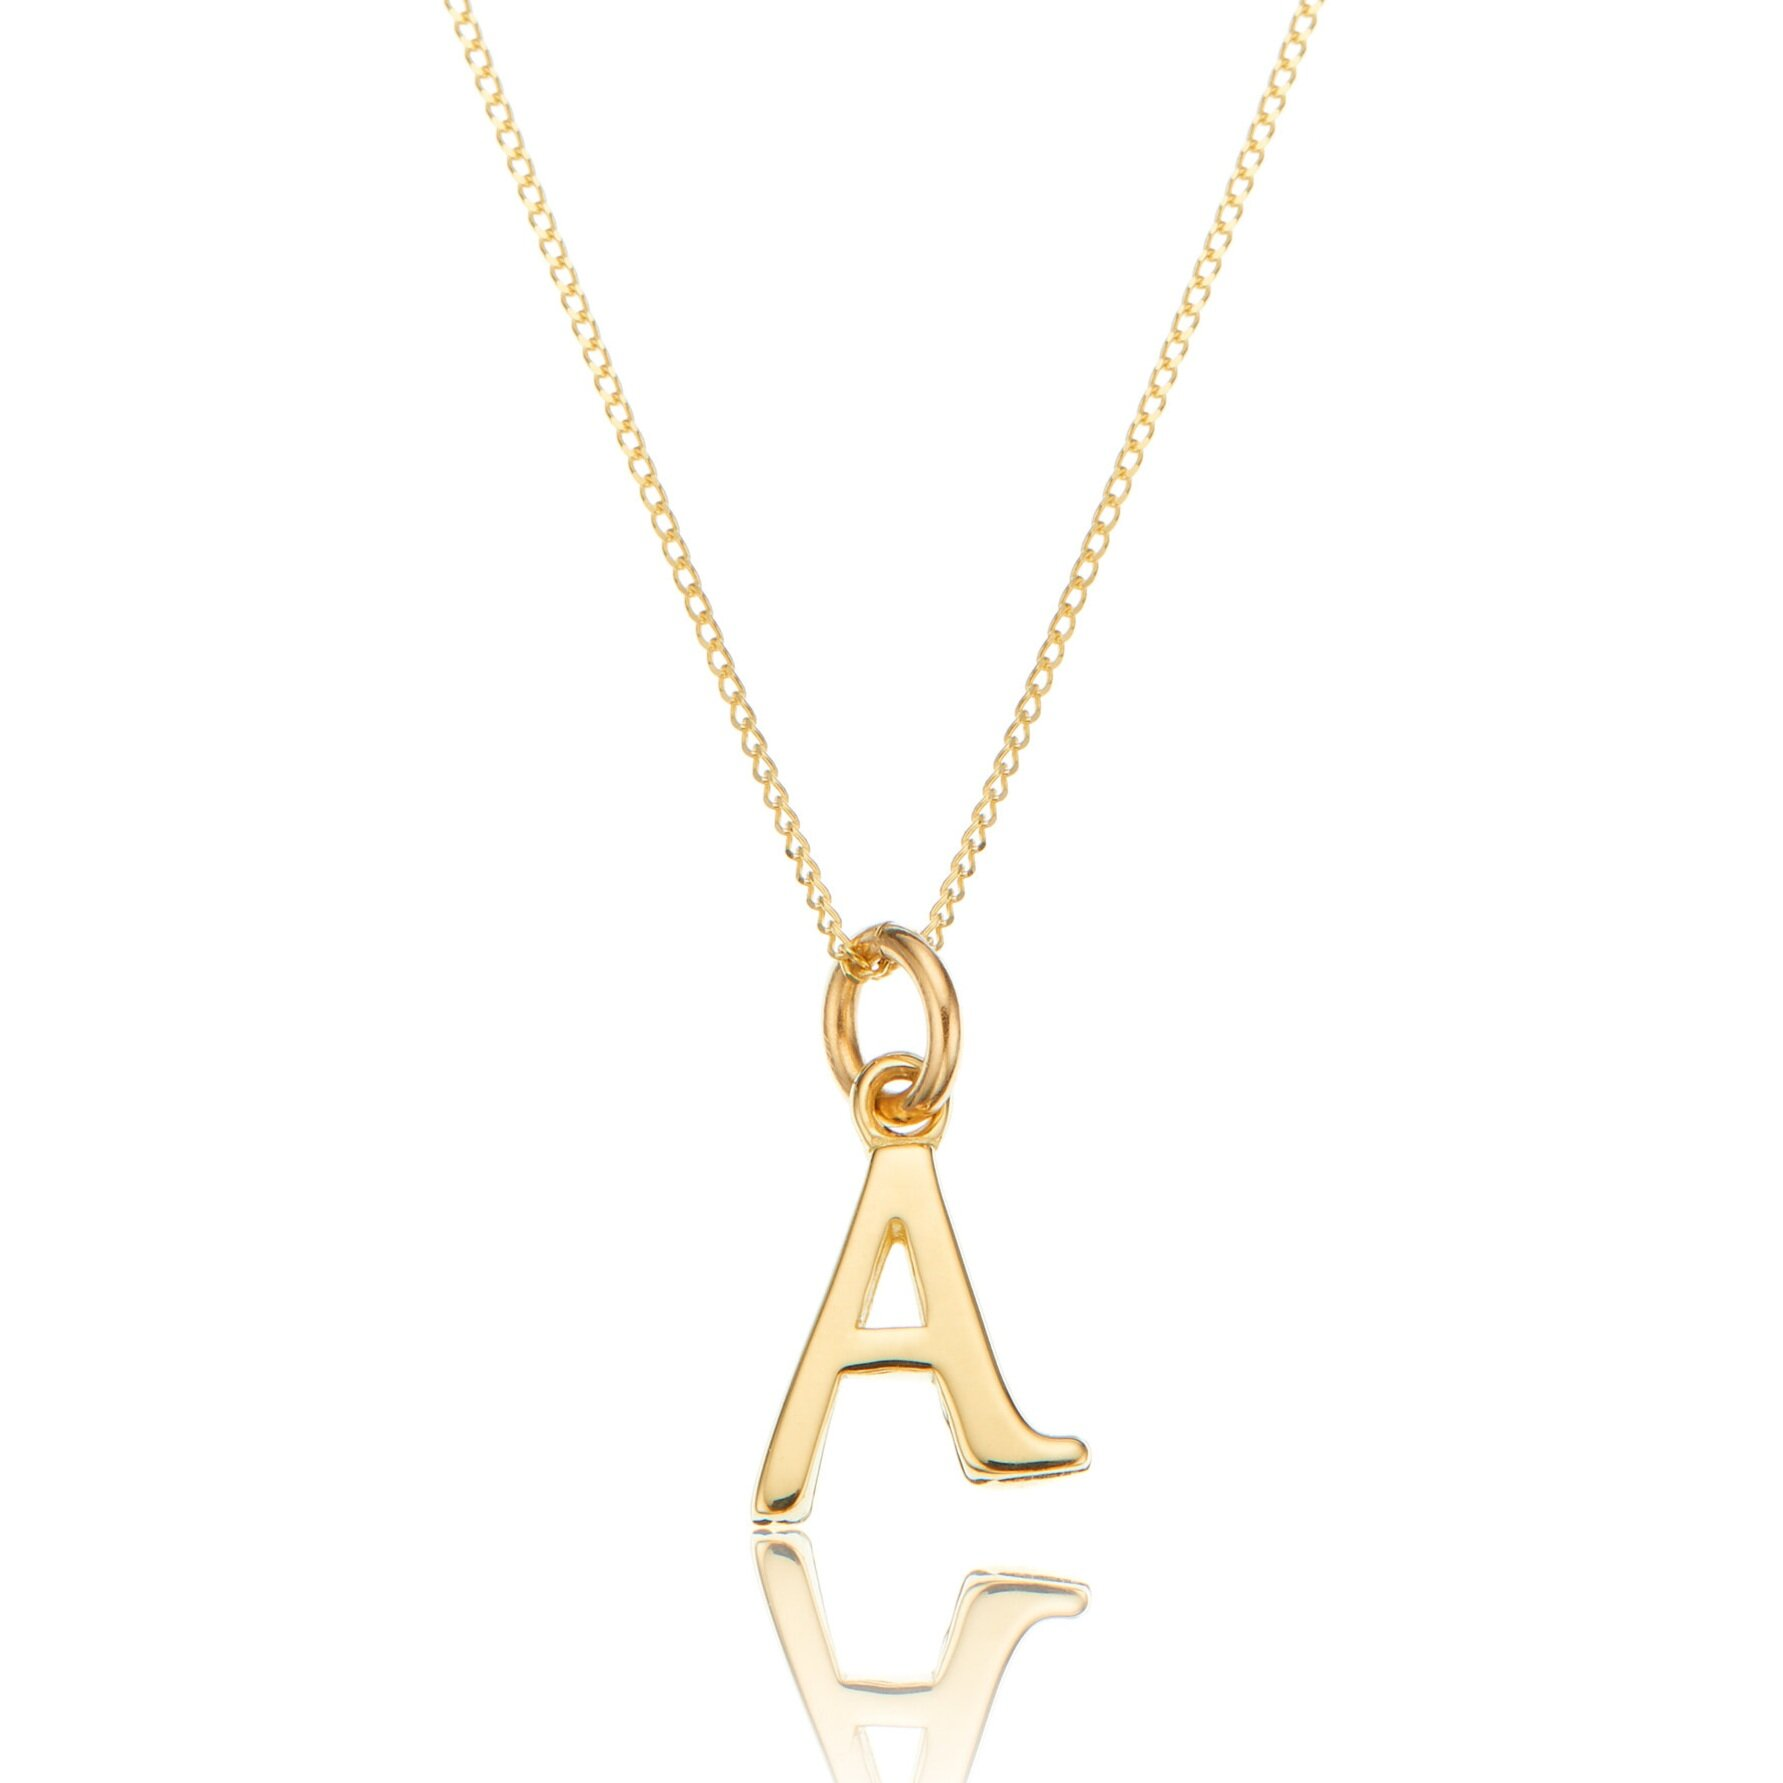 62b0efb7e794c Solid Gold Initial Letter Necklace — Lily & Roo